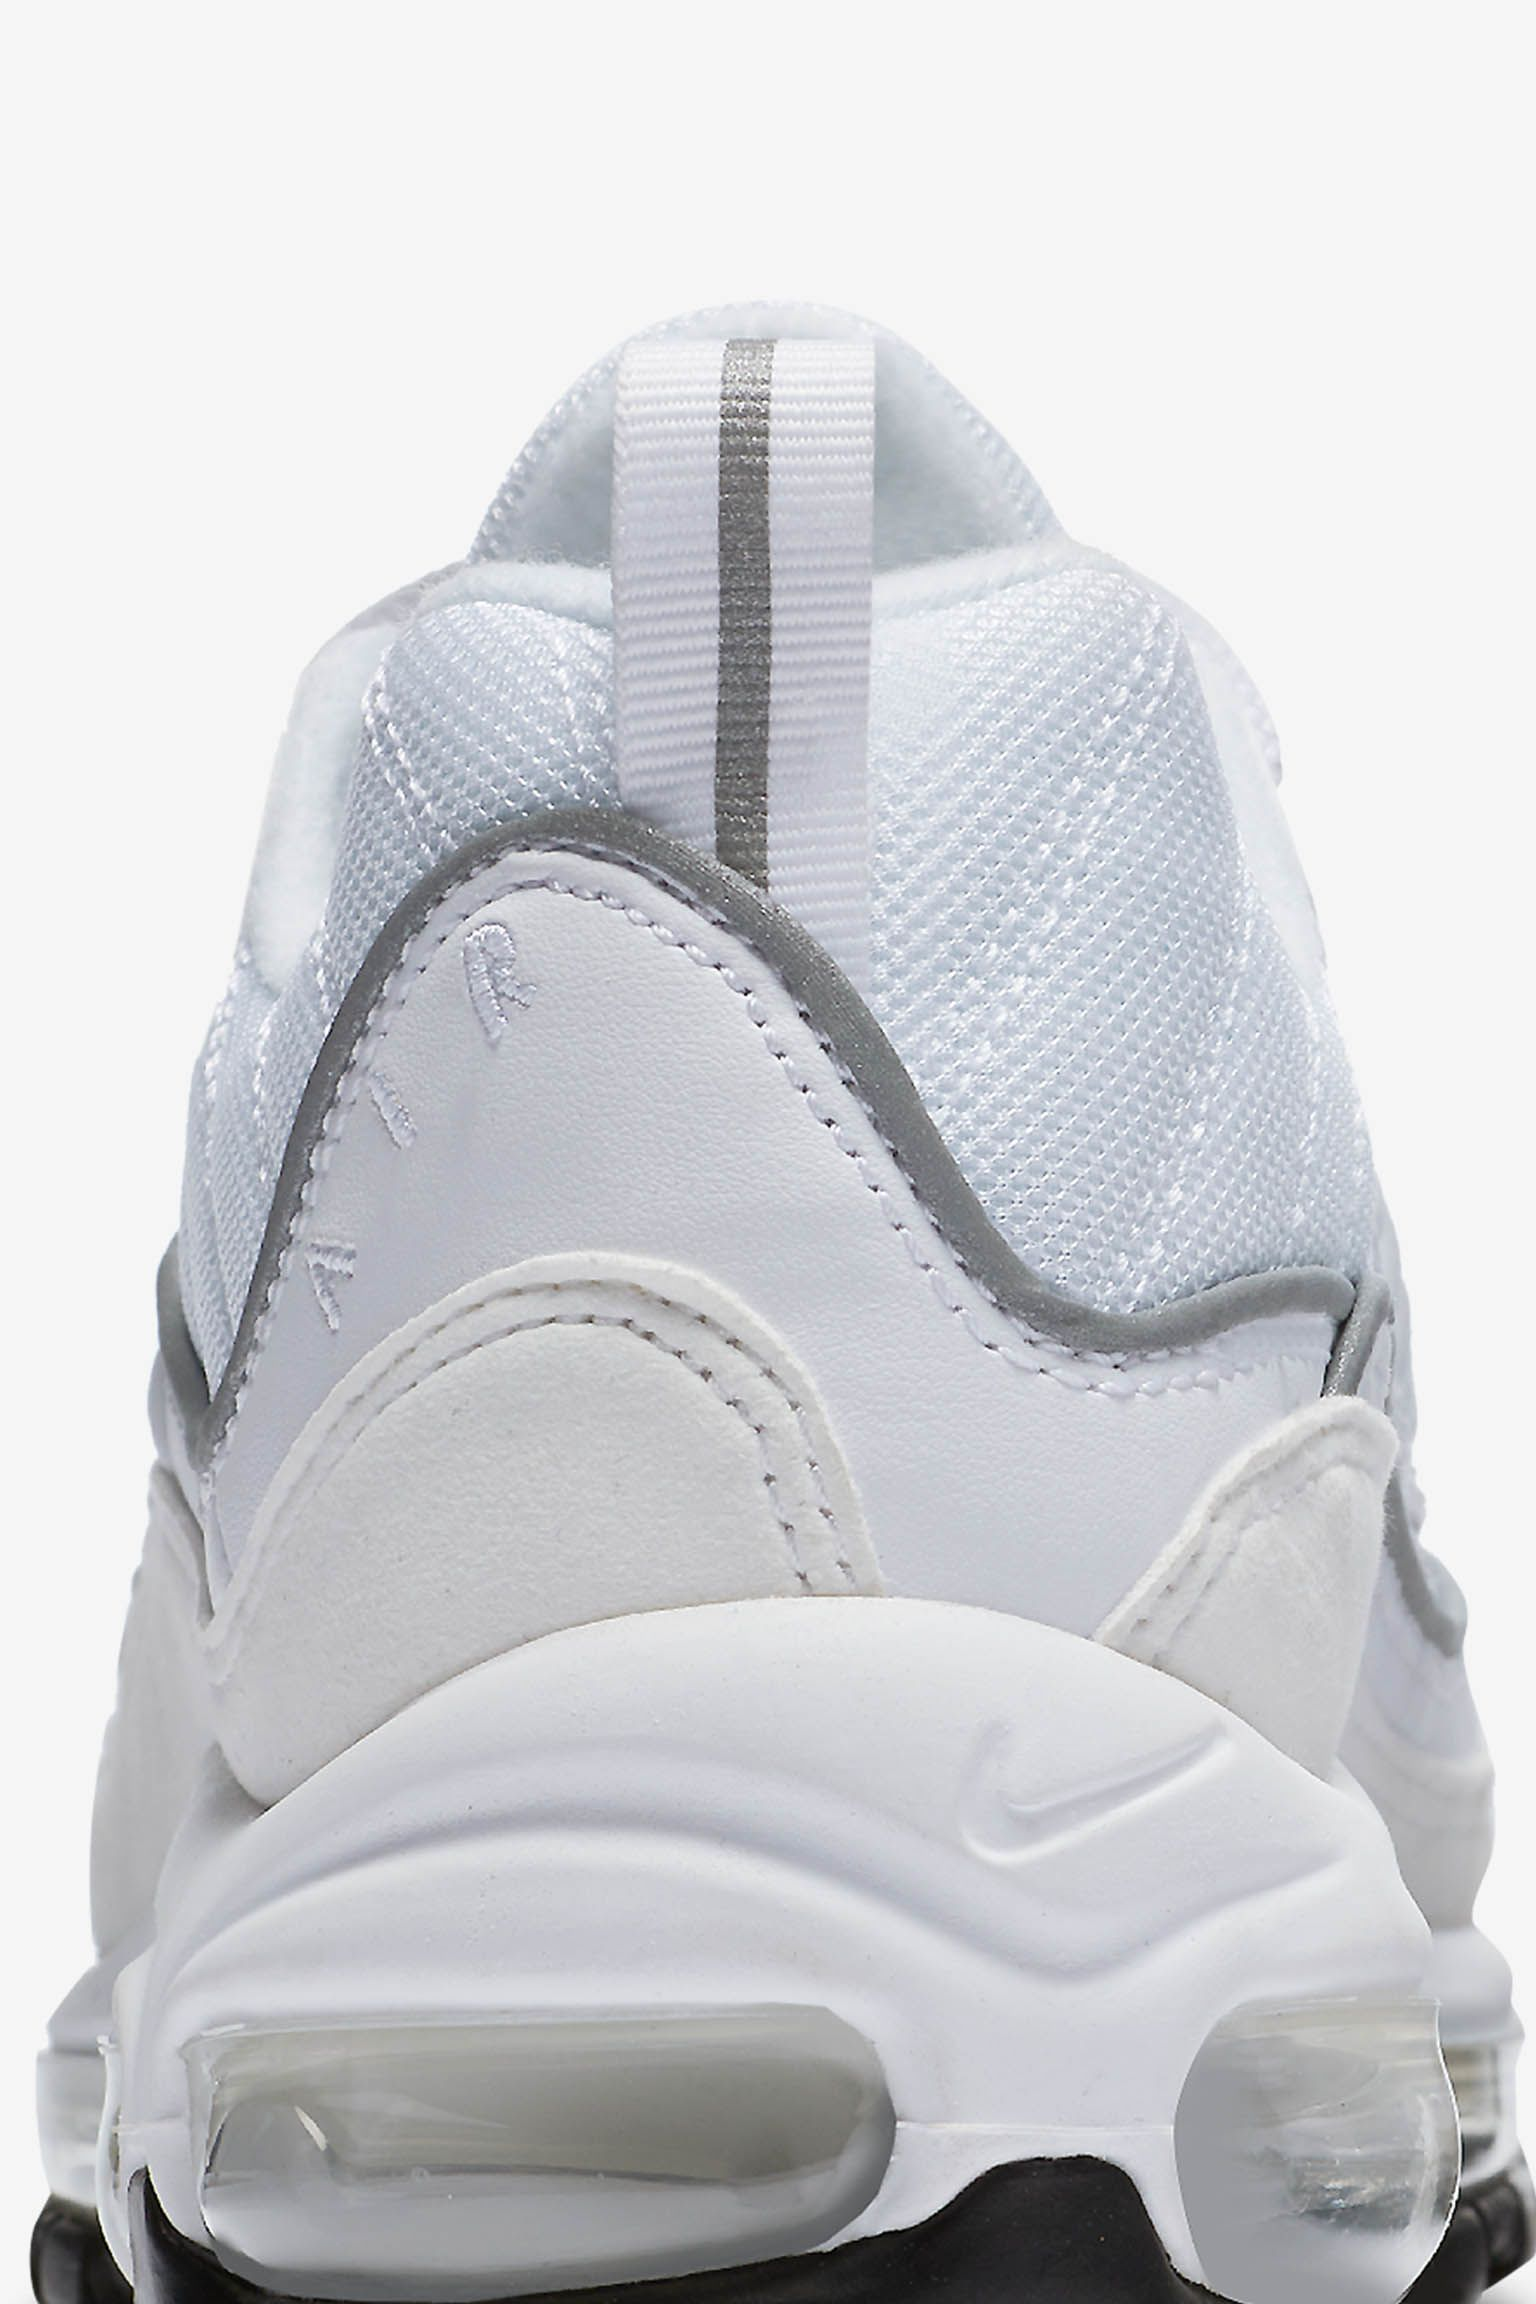 official photos 064f0 d2fb0 ... get nike womens air max 98 white reflective silver release date 72c4d  06995